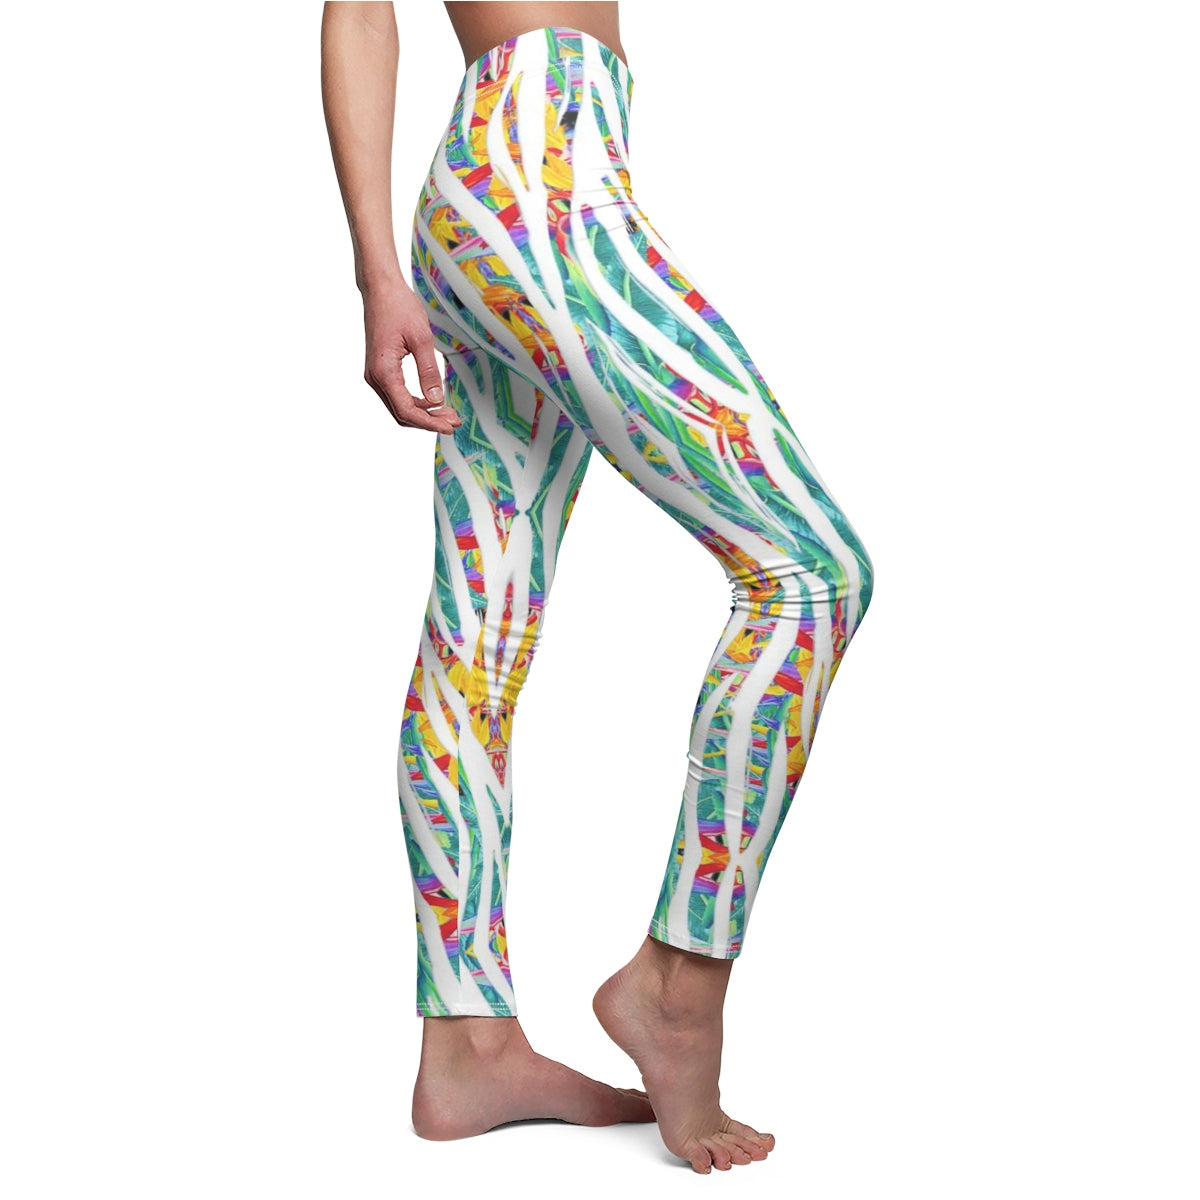 Fiji Islands #0009 (Leggings)